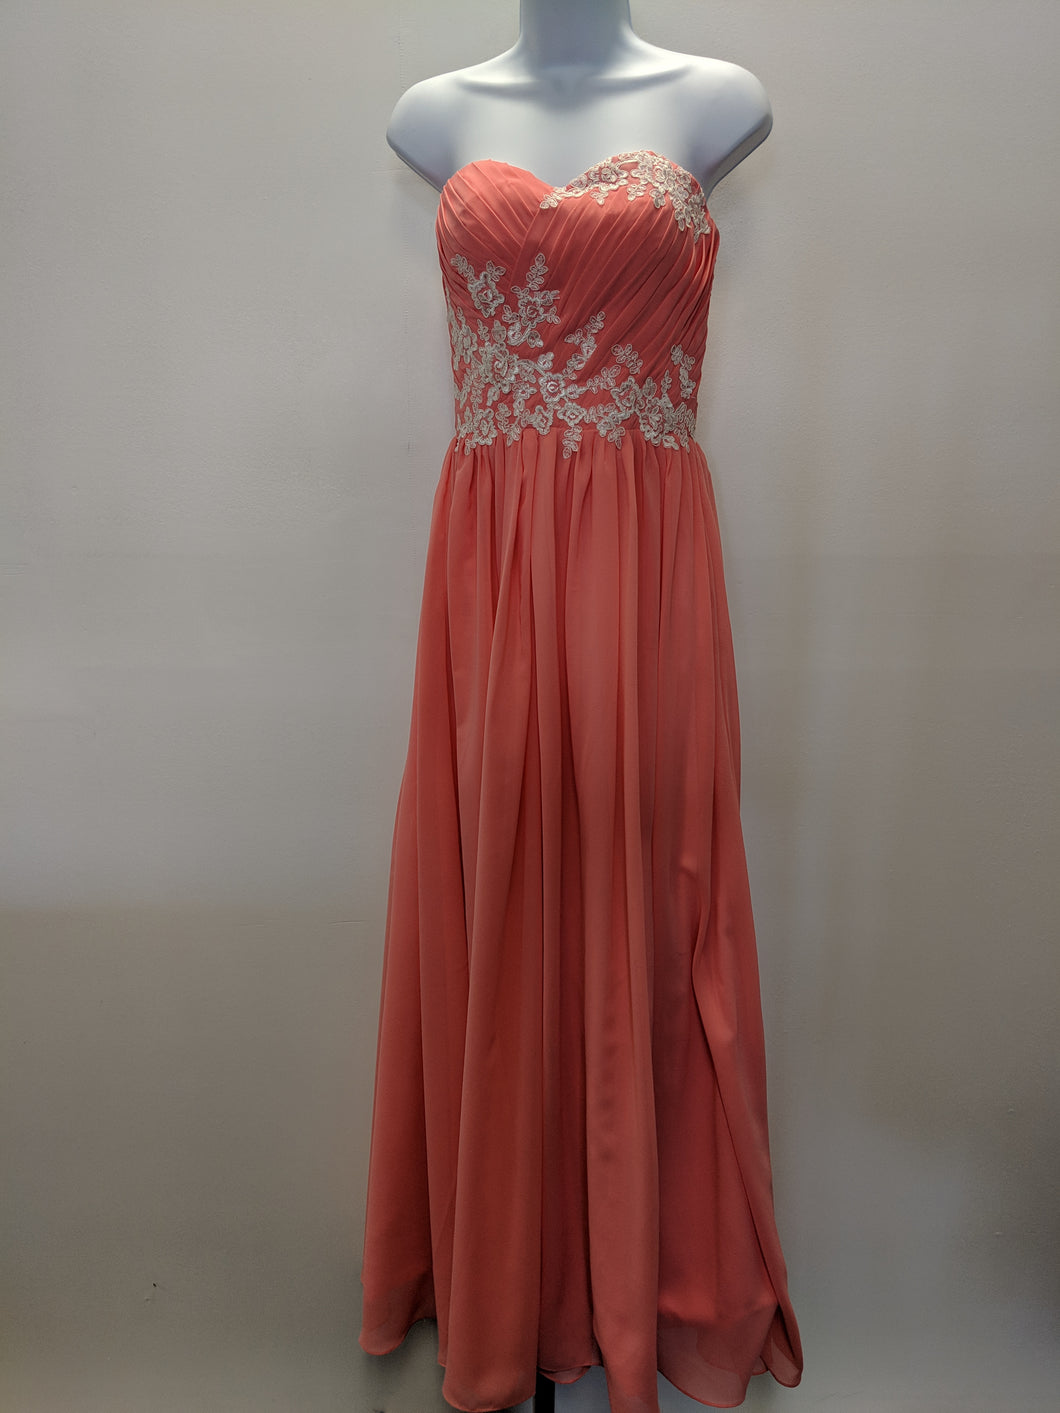 C3-4 Coral Prom Dress for your Special Occasion